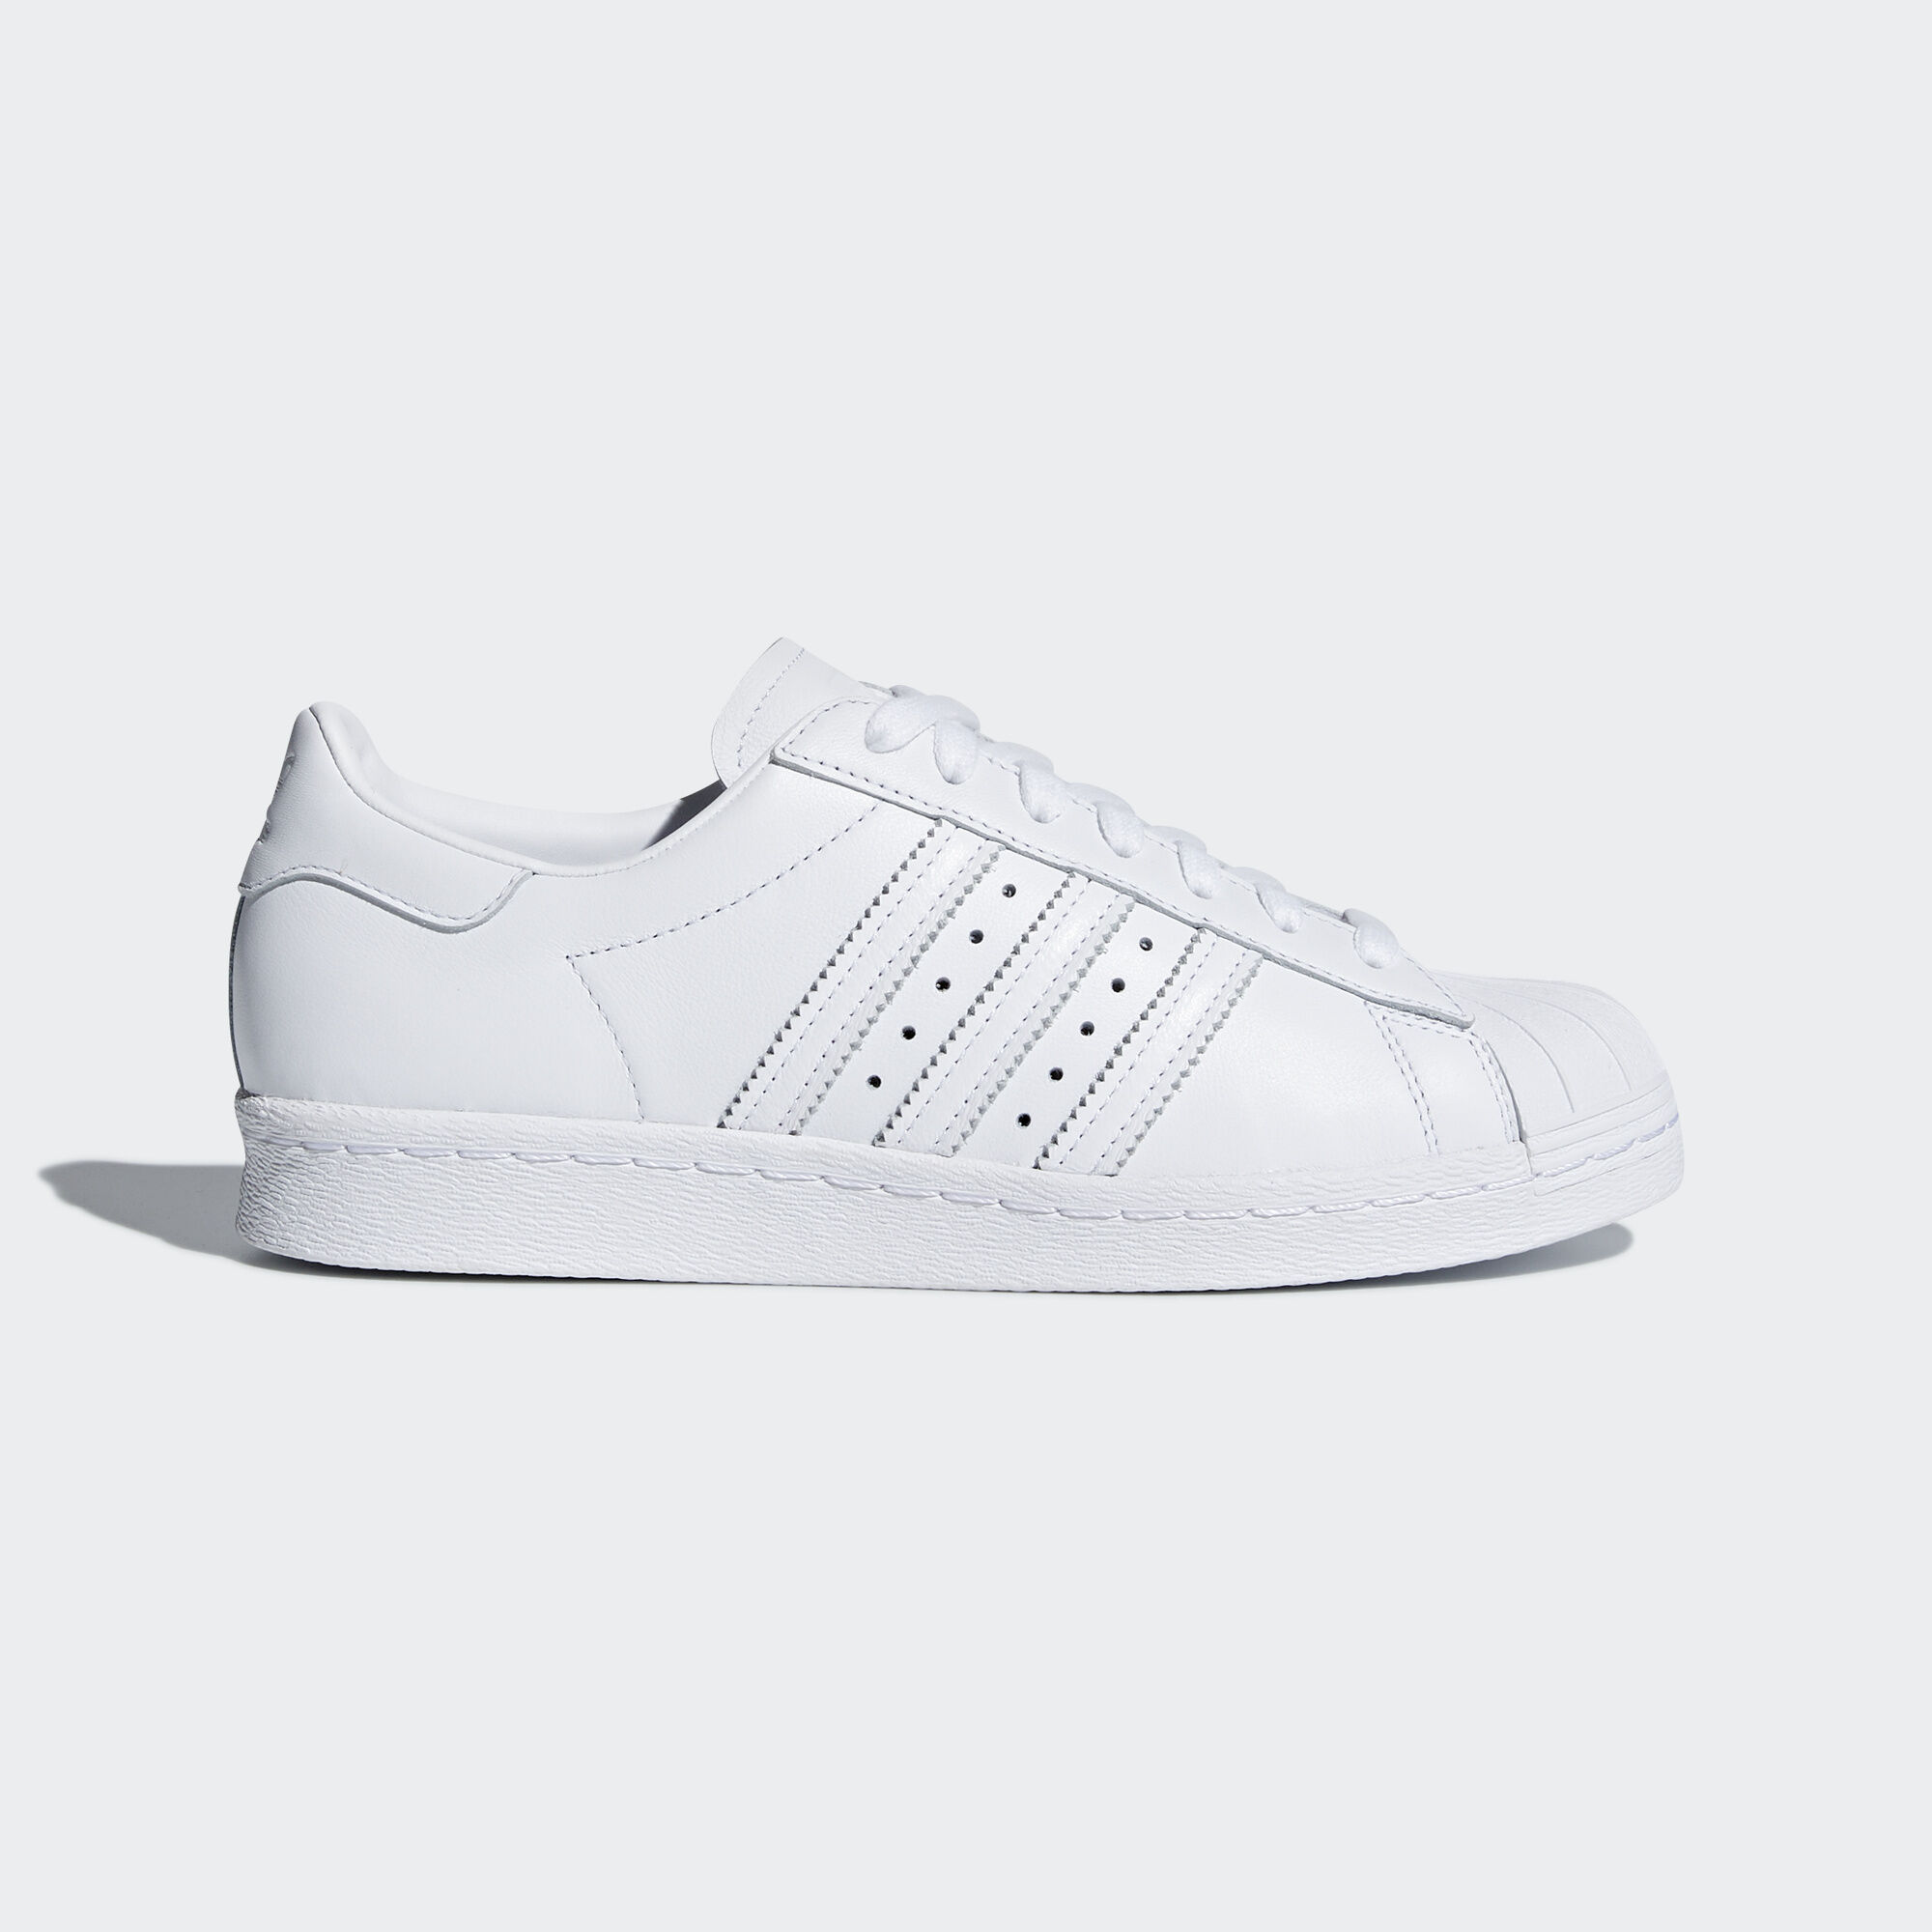 adidas - Superstar 80s Half Heart Shoes Ftwr White/Ftwr White/Scarlet CQ3009